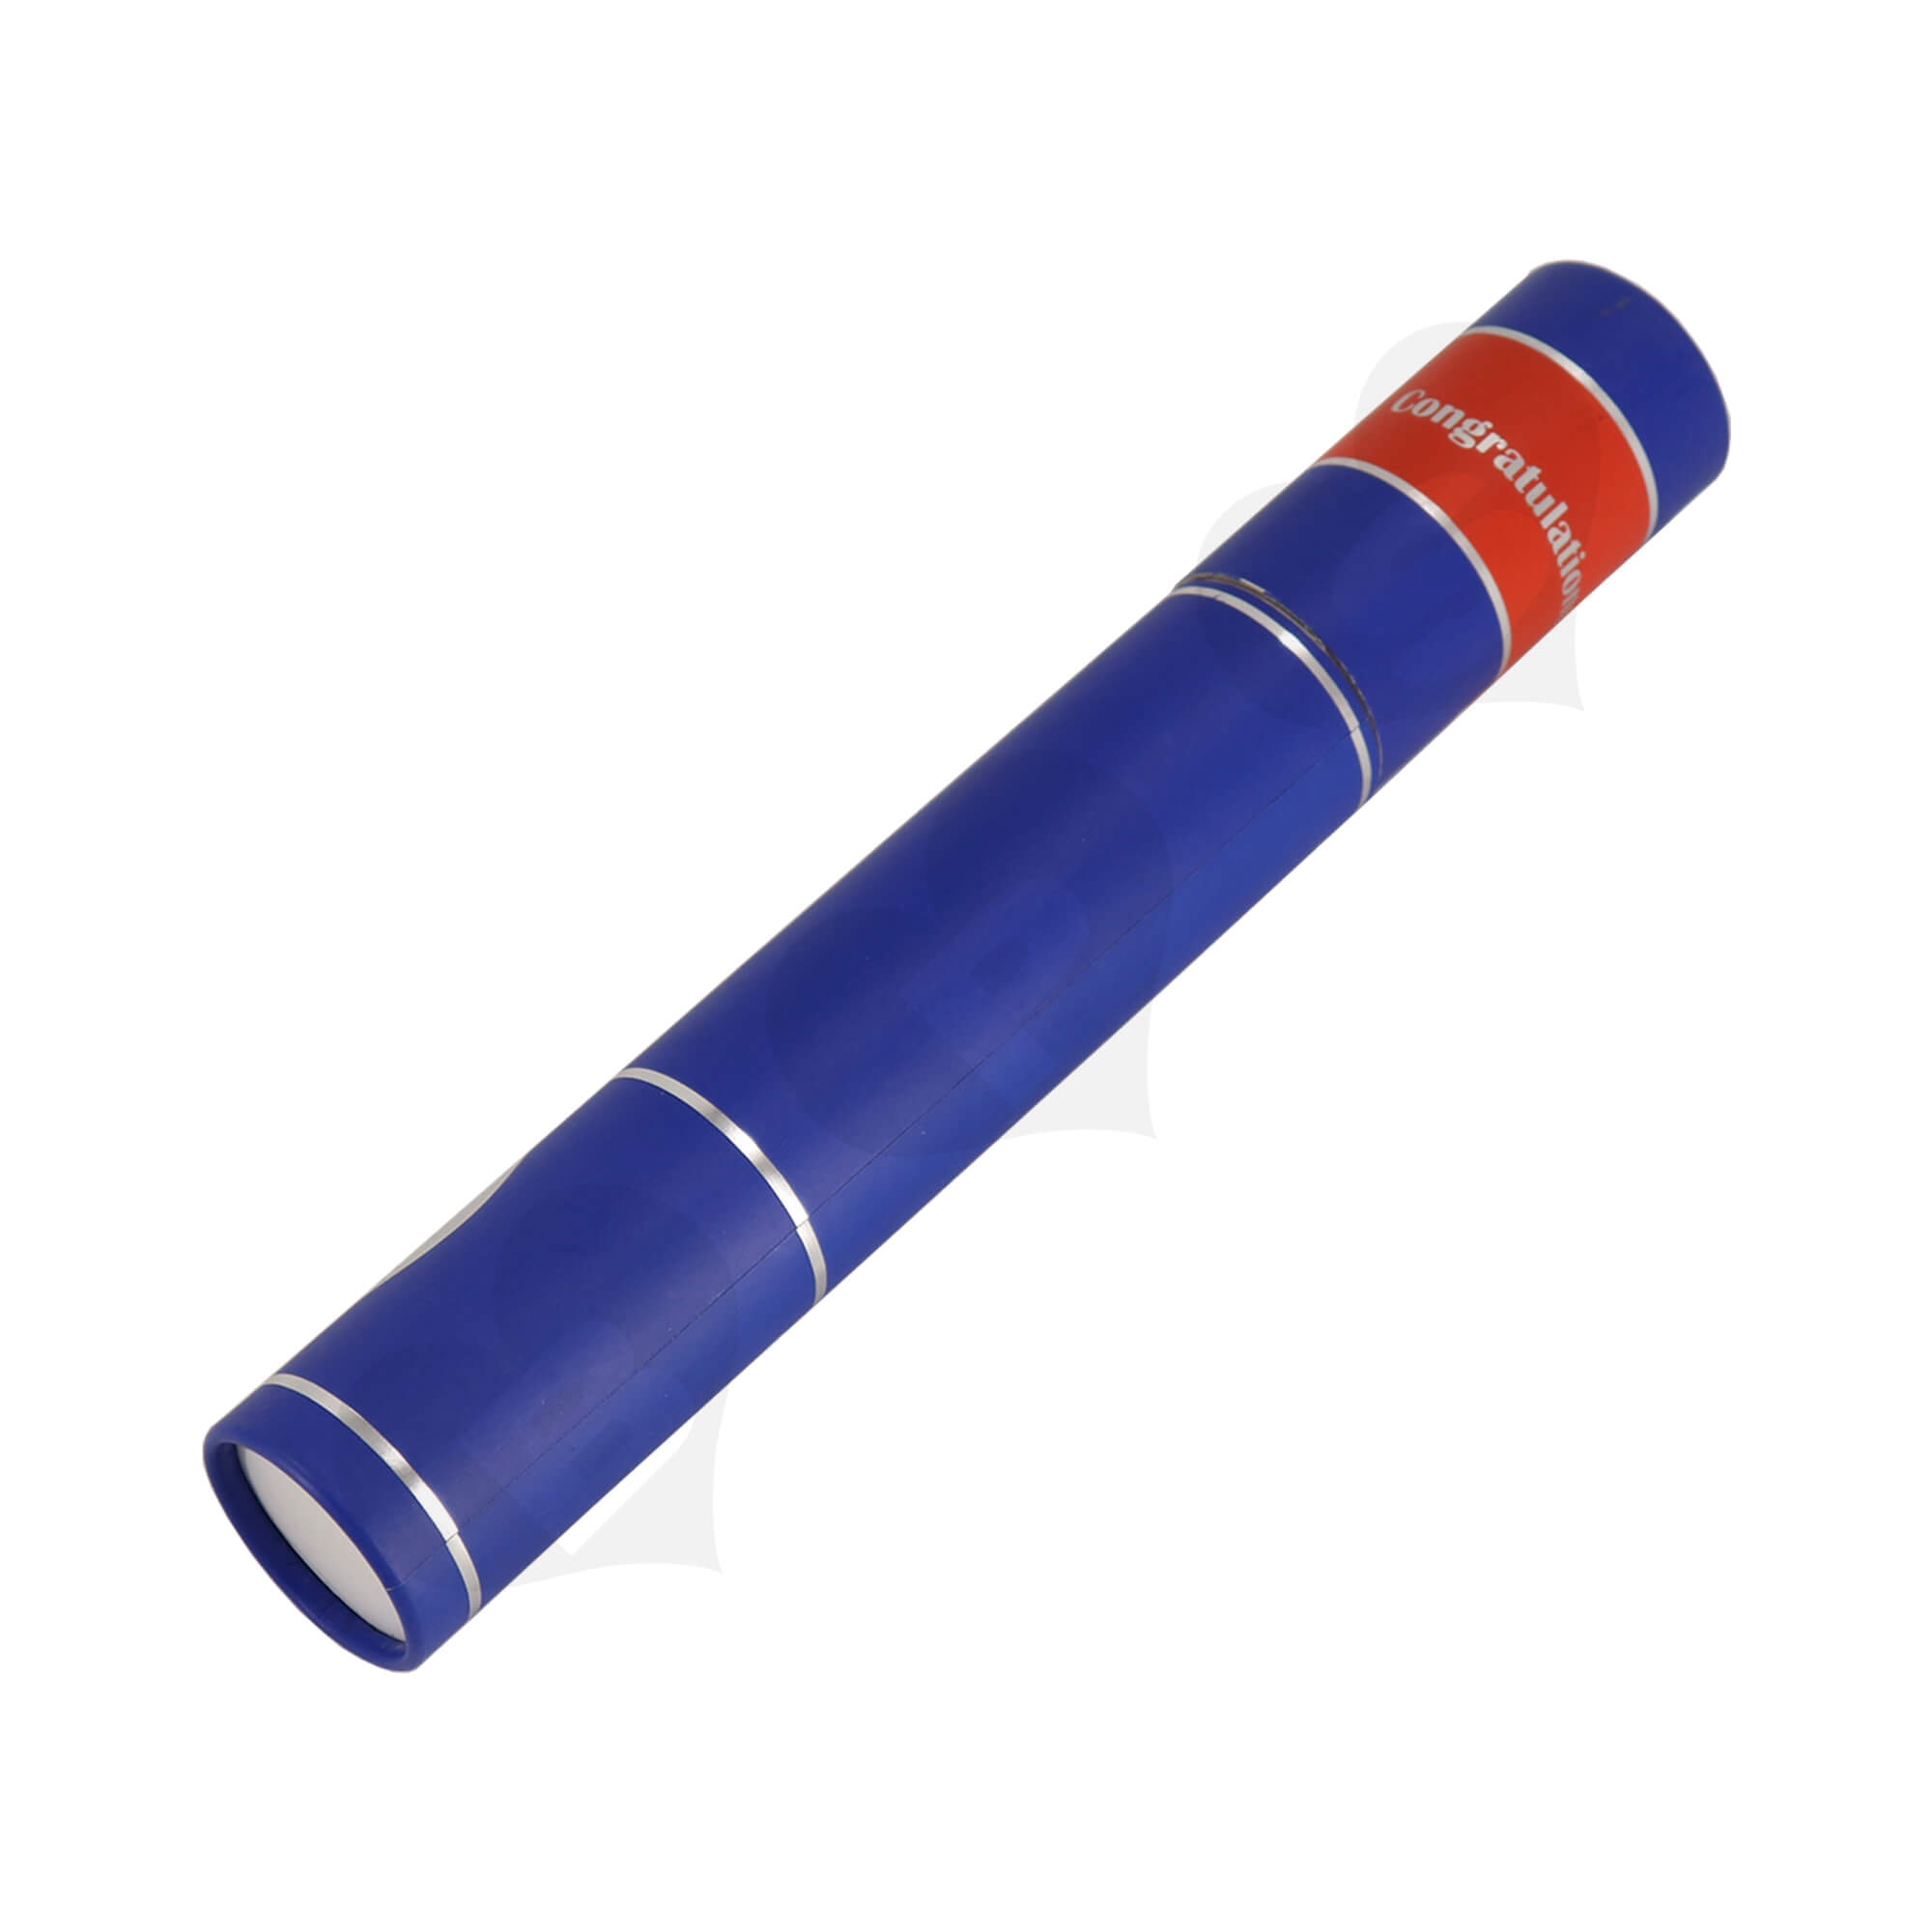 Big Size Cardboard Tube For Packing University Congratulations Gifts Side View One